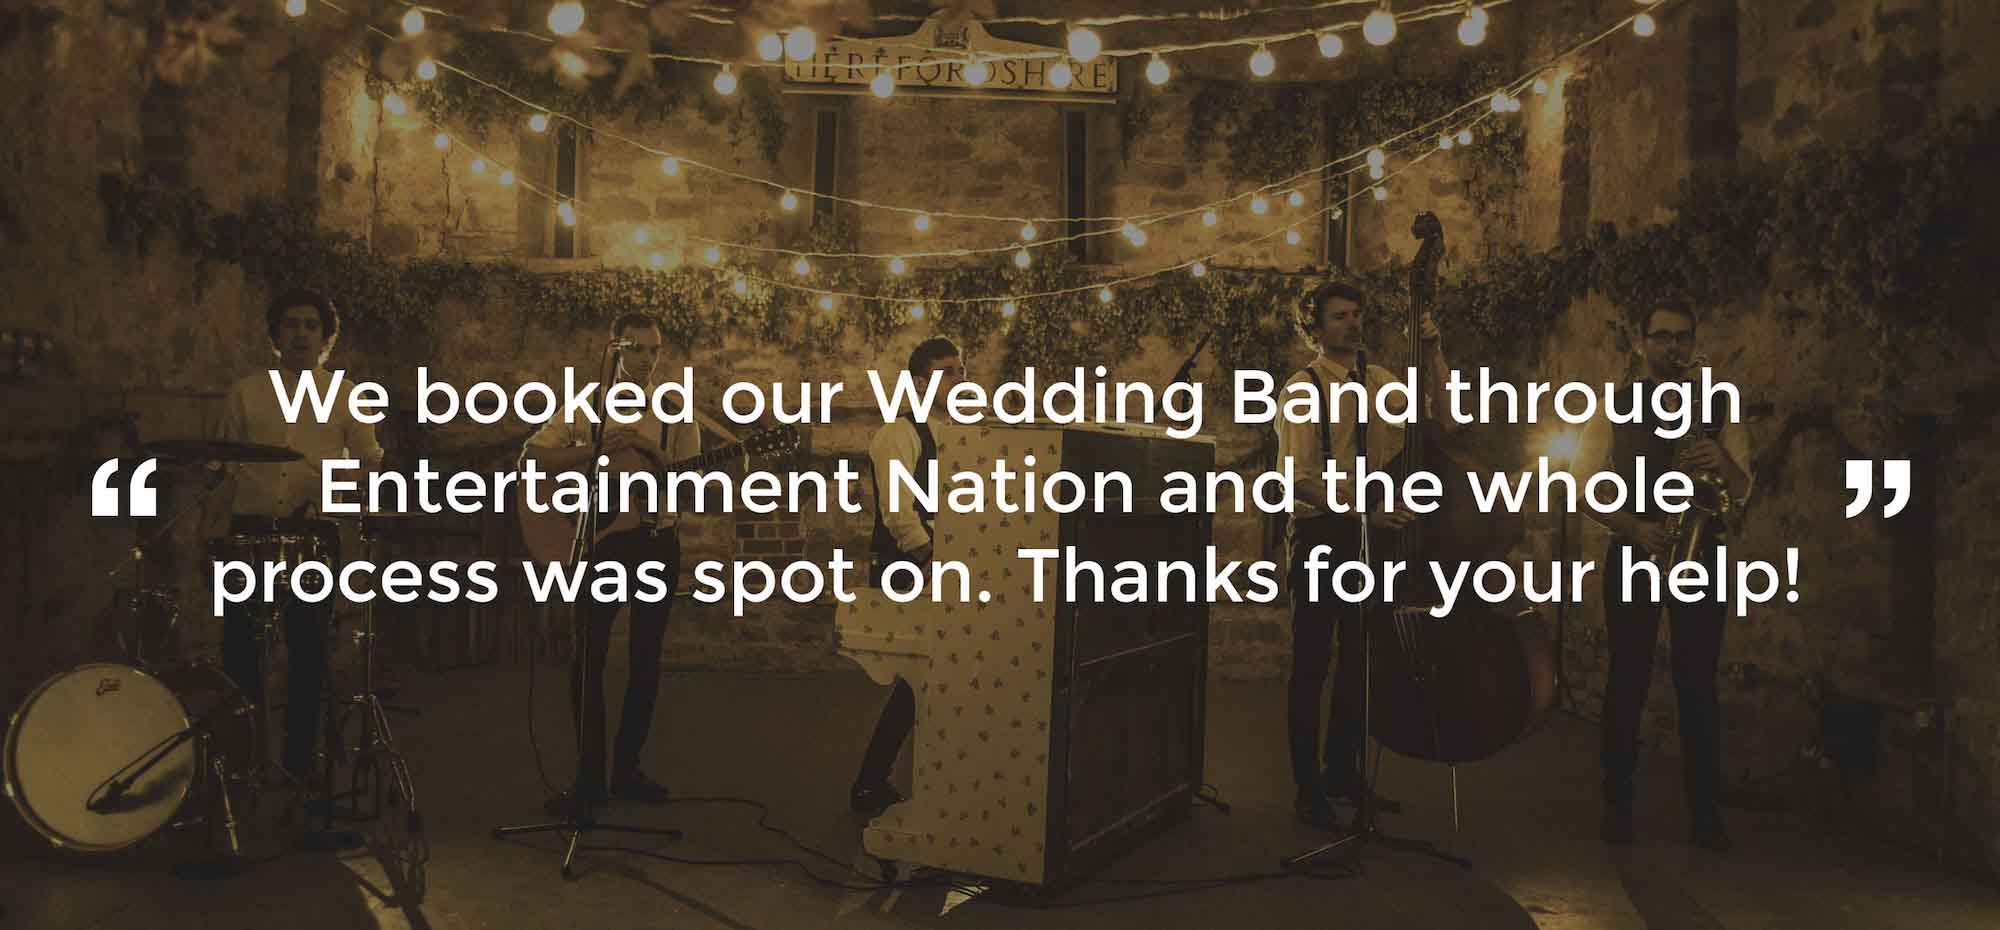 Client Review of a Wedding Band Hampshire